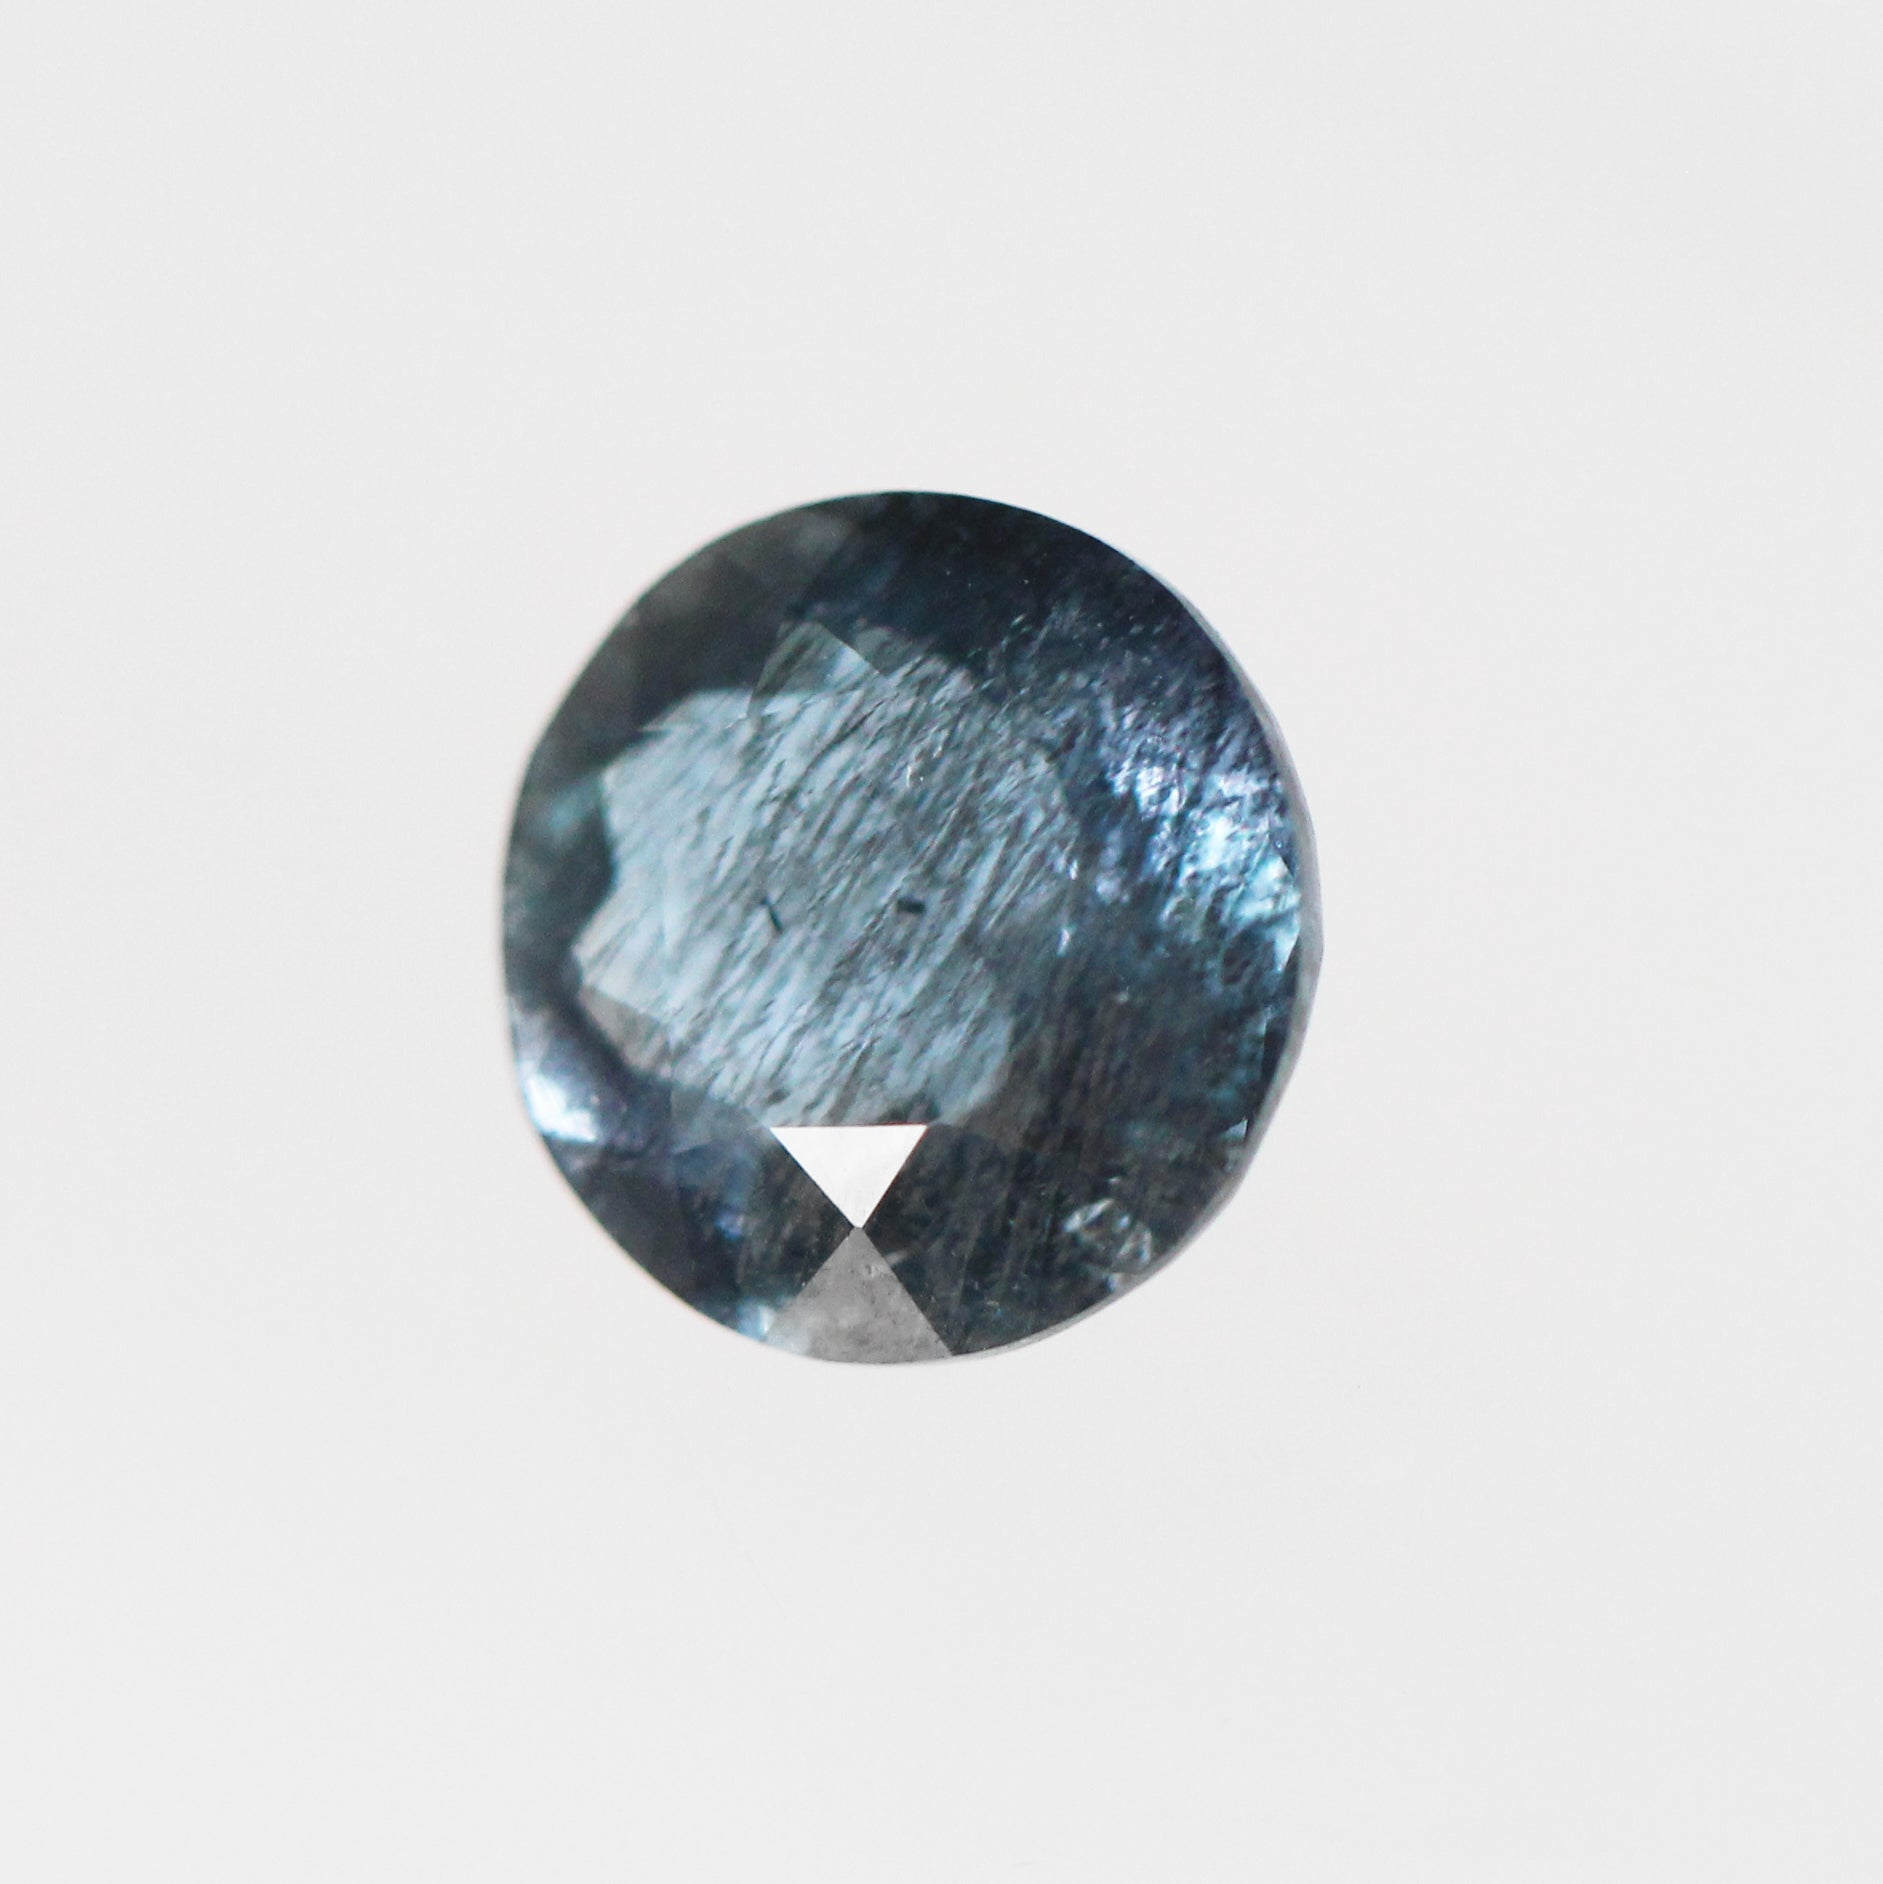 1.22 Carat Moss Aquamarine for Custom Work - Inventory Code RBMA122 - Celestial Diamonds ® by Midwinter Co.